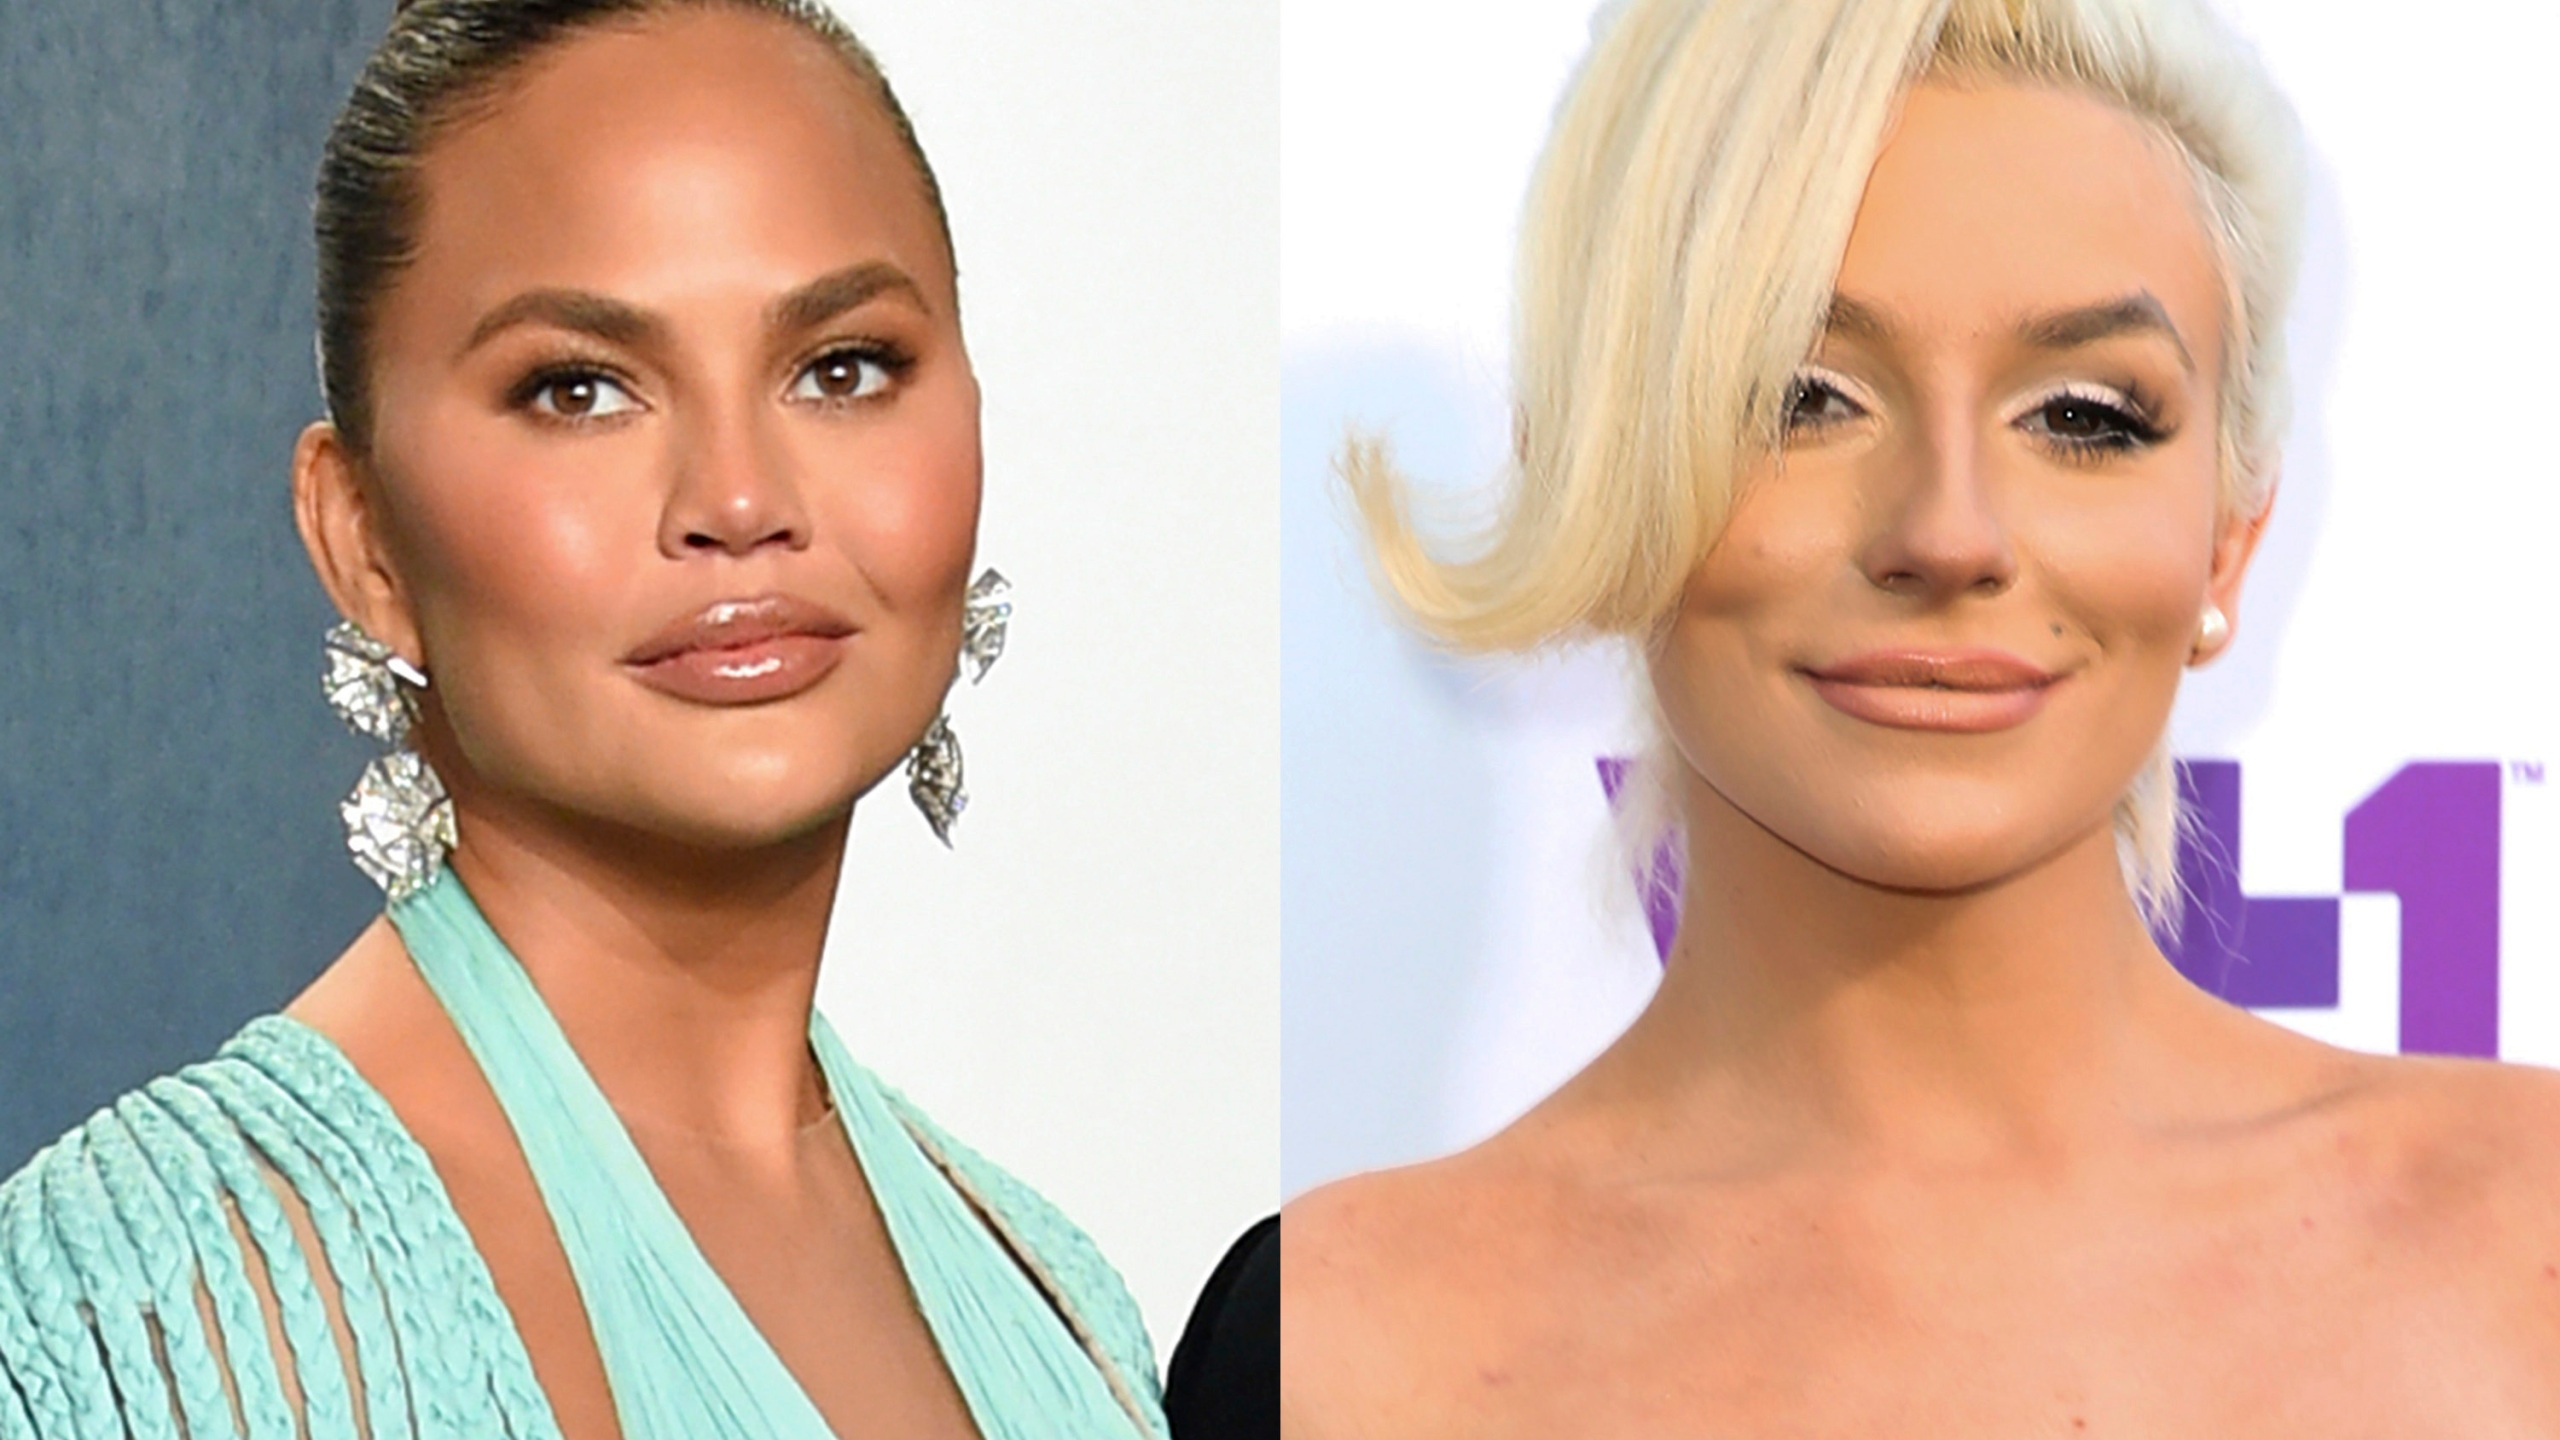 Chrissy Teigen appears at the Vanity Fair Oscar Party in Beverly Hills, Calif. on Feb. 9, 2020, left, and Courtney Stodden appears at the 5th Annual Streamy Awards in Los Angeles on Sept. 17, 2015. (AP Photo)